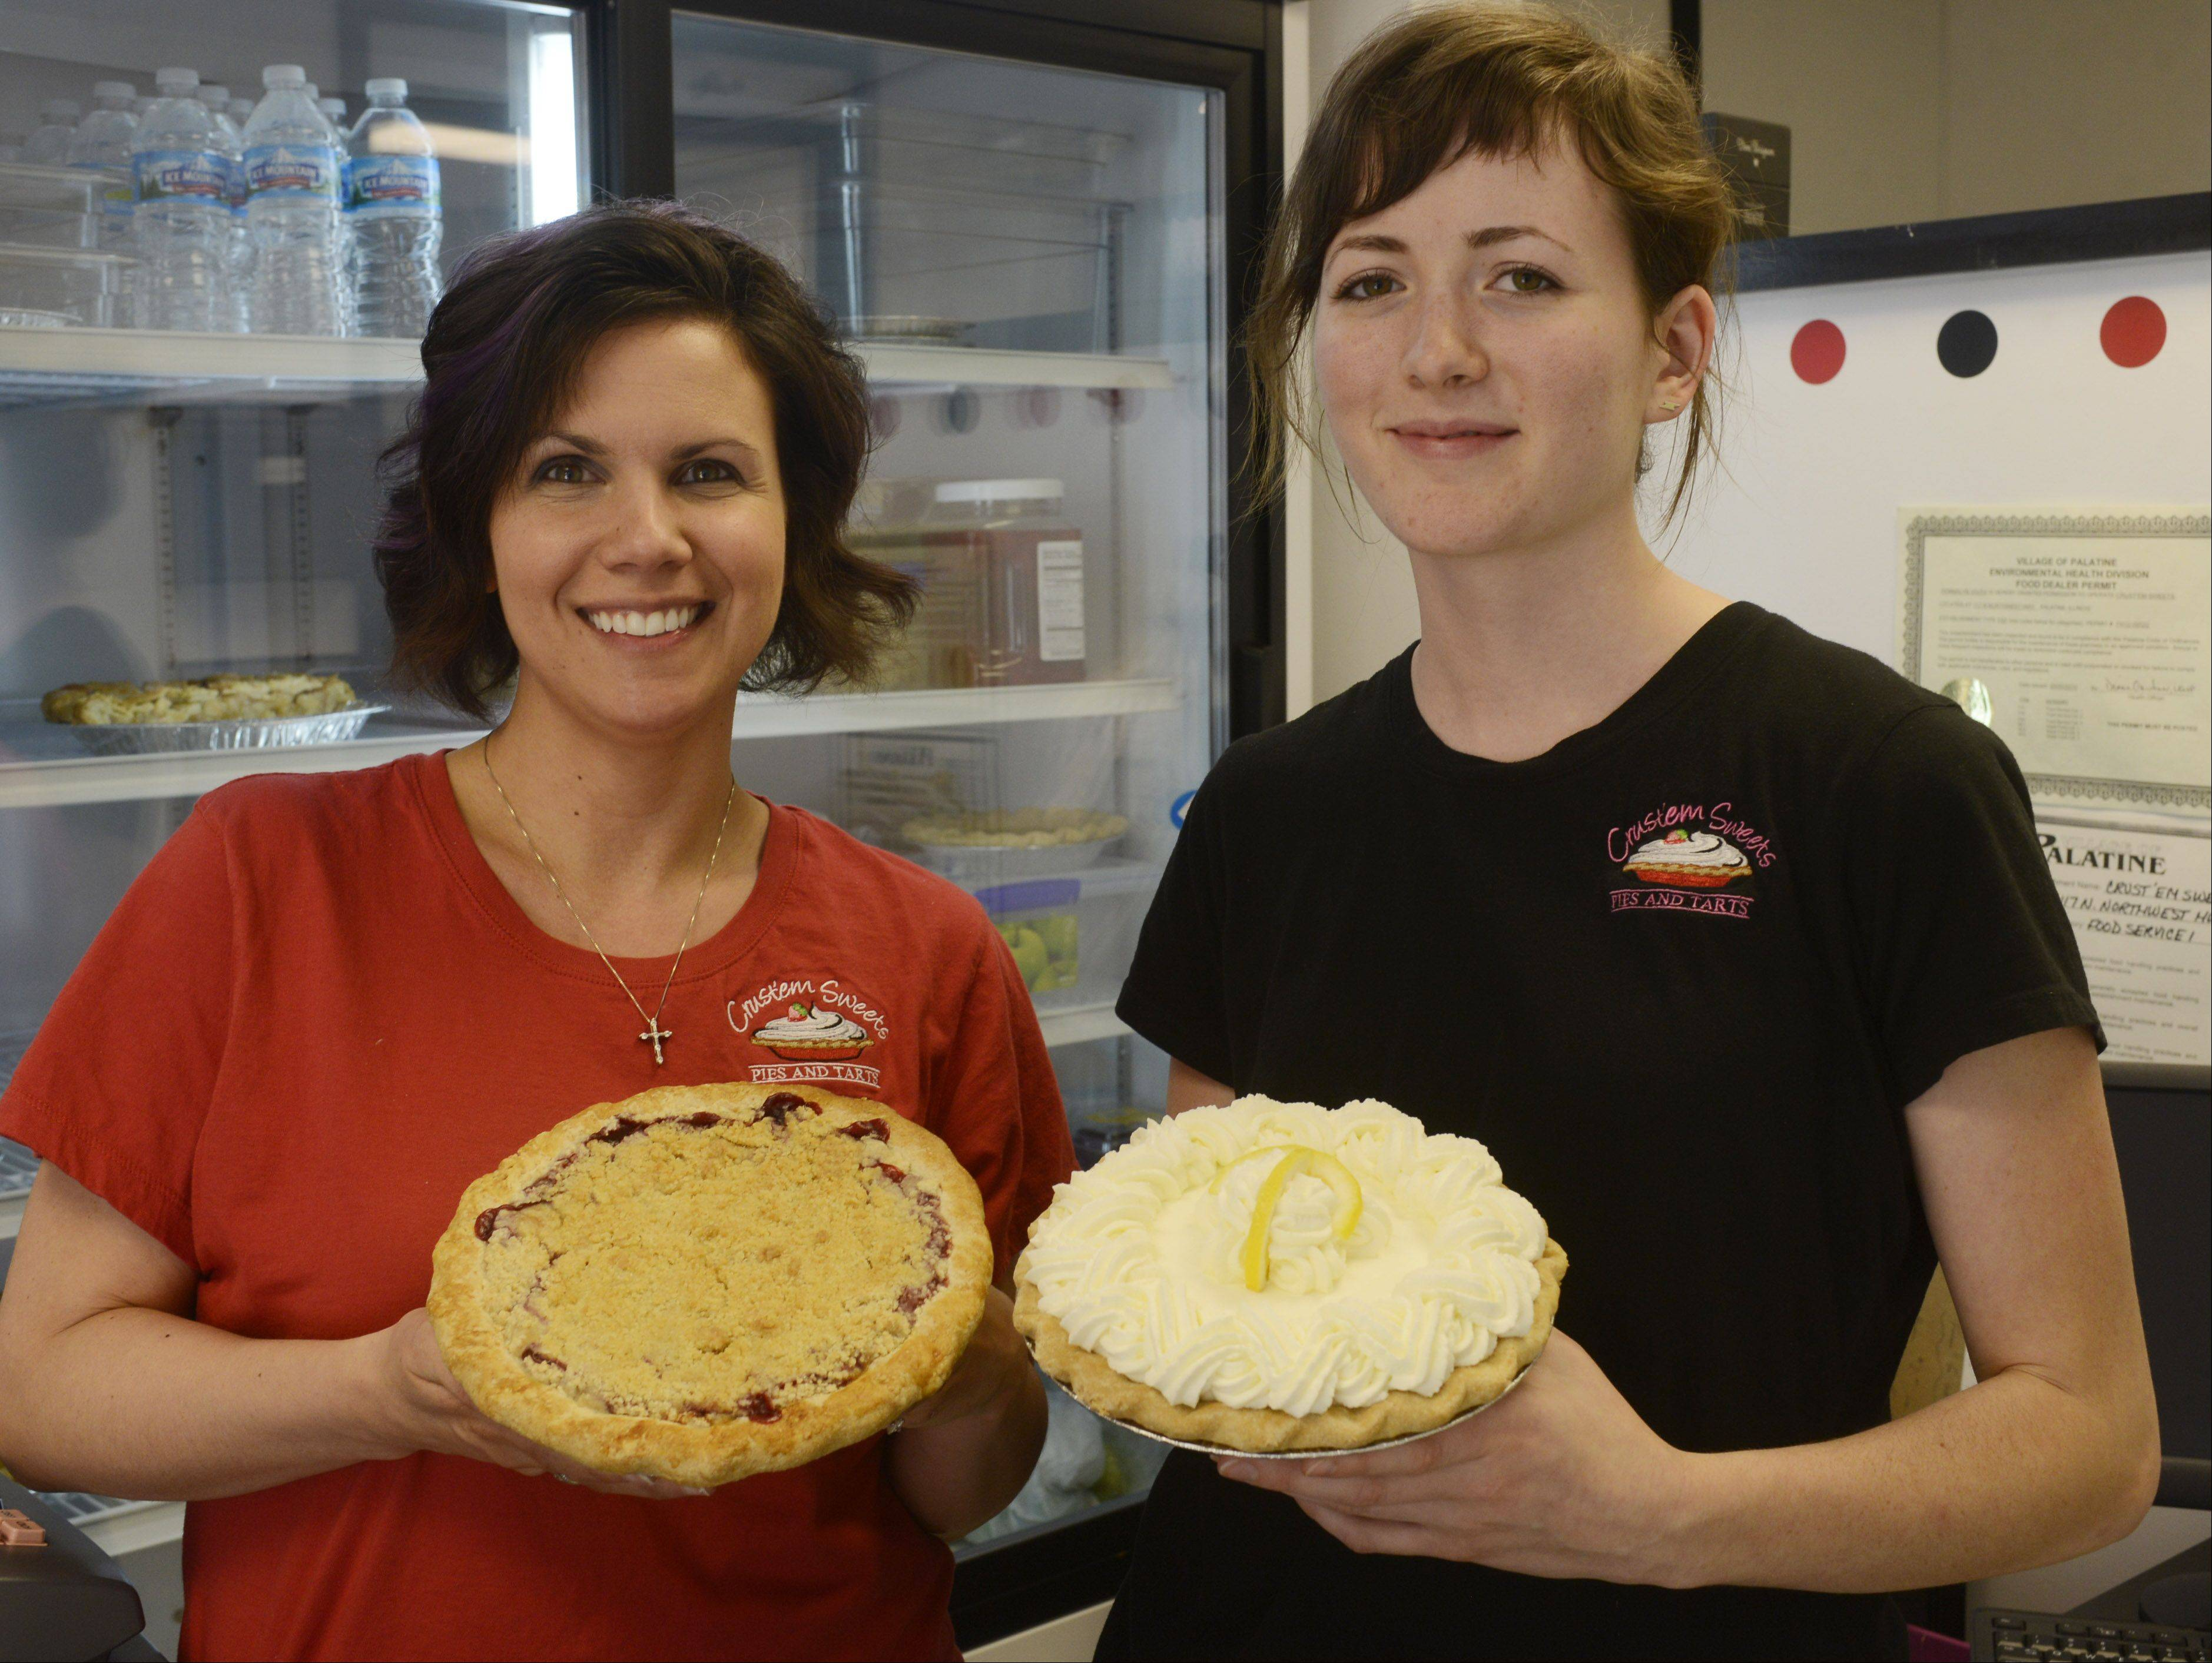 JOE LEWNARD/DAILY HERALDOwner/baker Donnalyn Vojta, left, and baker Amanda Martensen hold pies at Crust'em Sweets in Palatine.